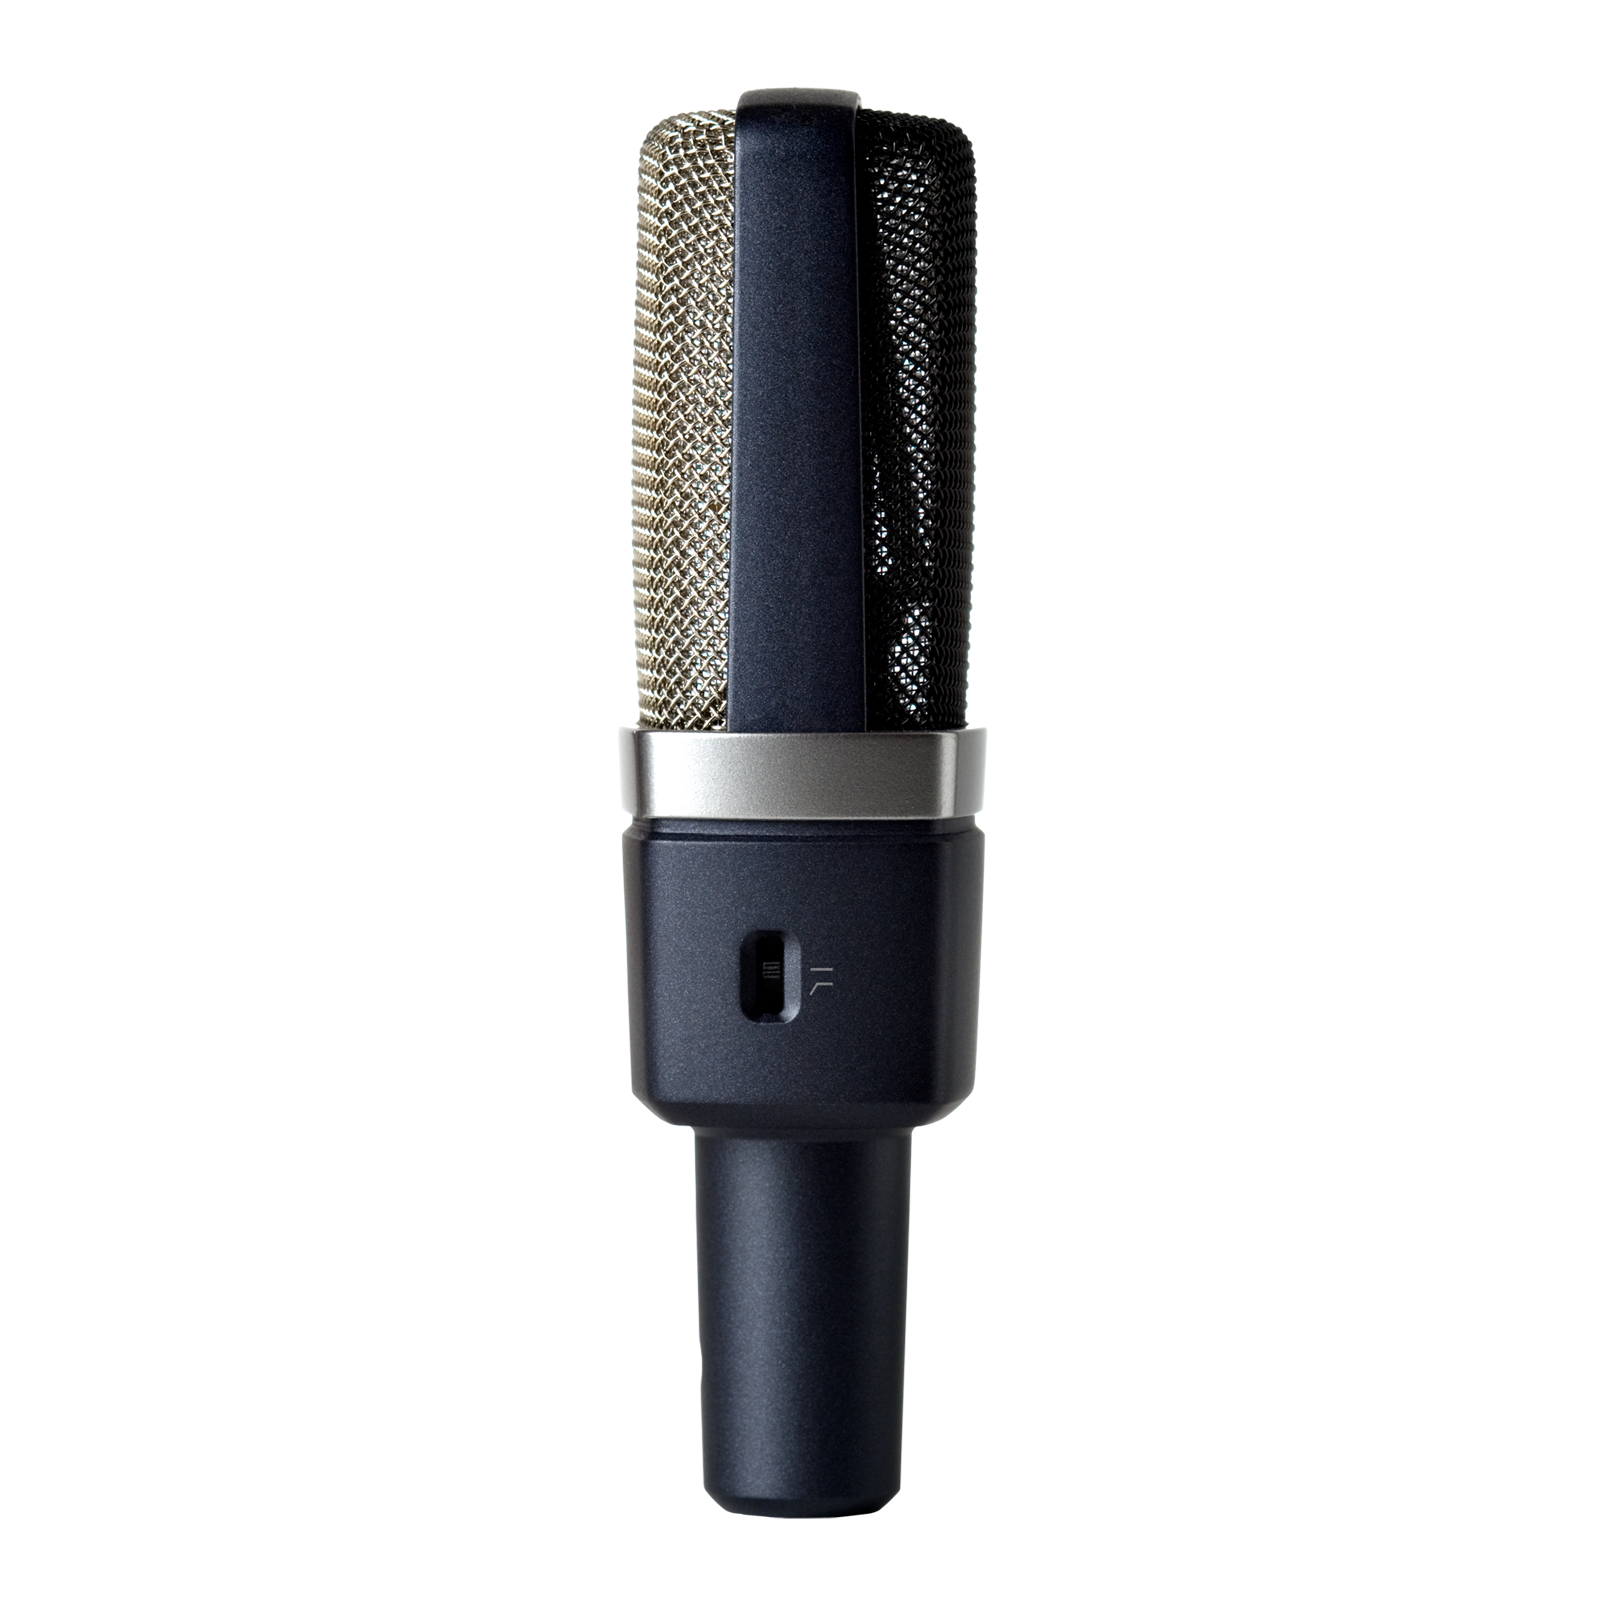 C214 - Black - Professional  large-diaphragm  condenser microphone - Left